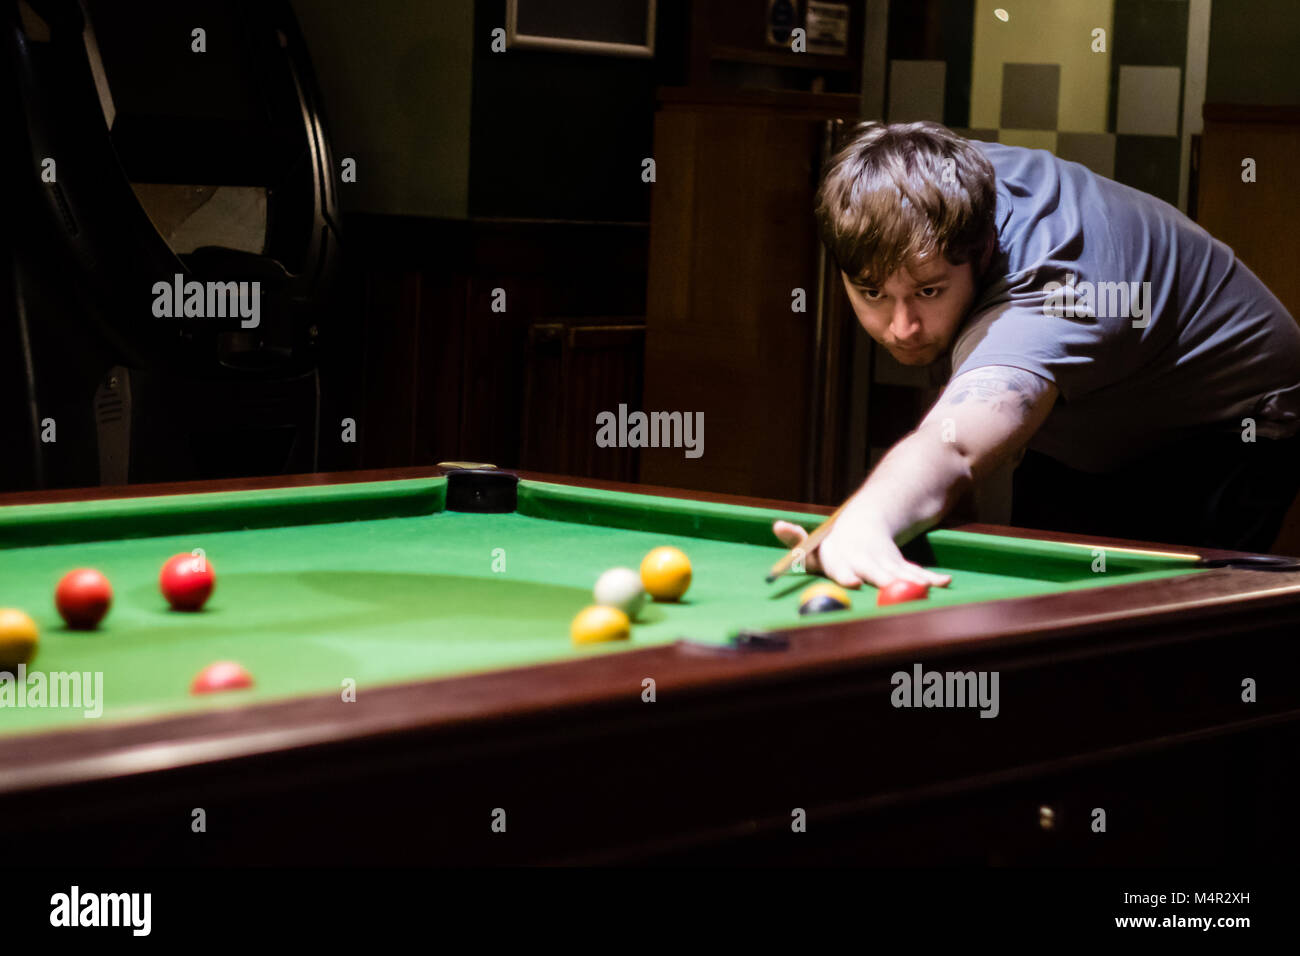 A man preparing to play a pool shot, taken from the front - Stock Image